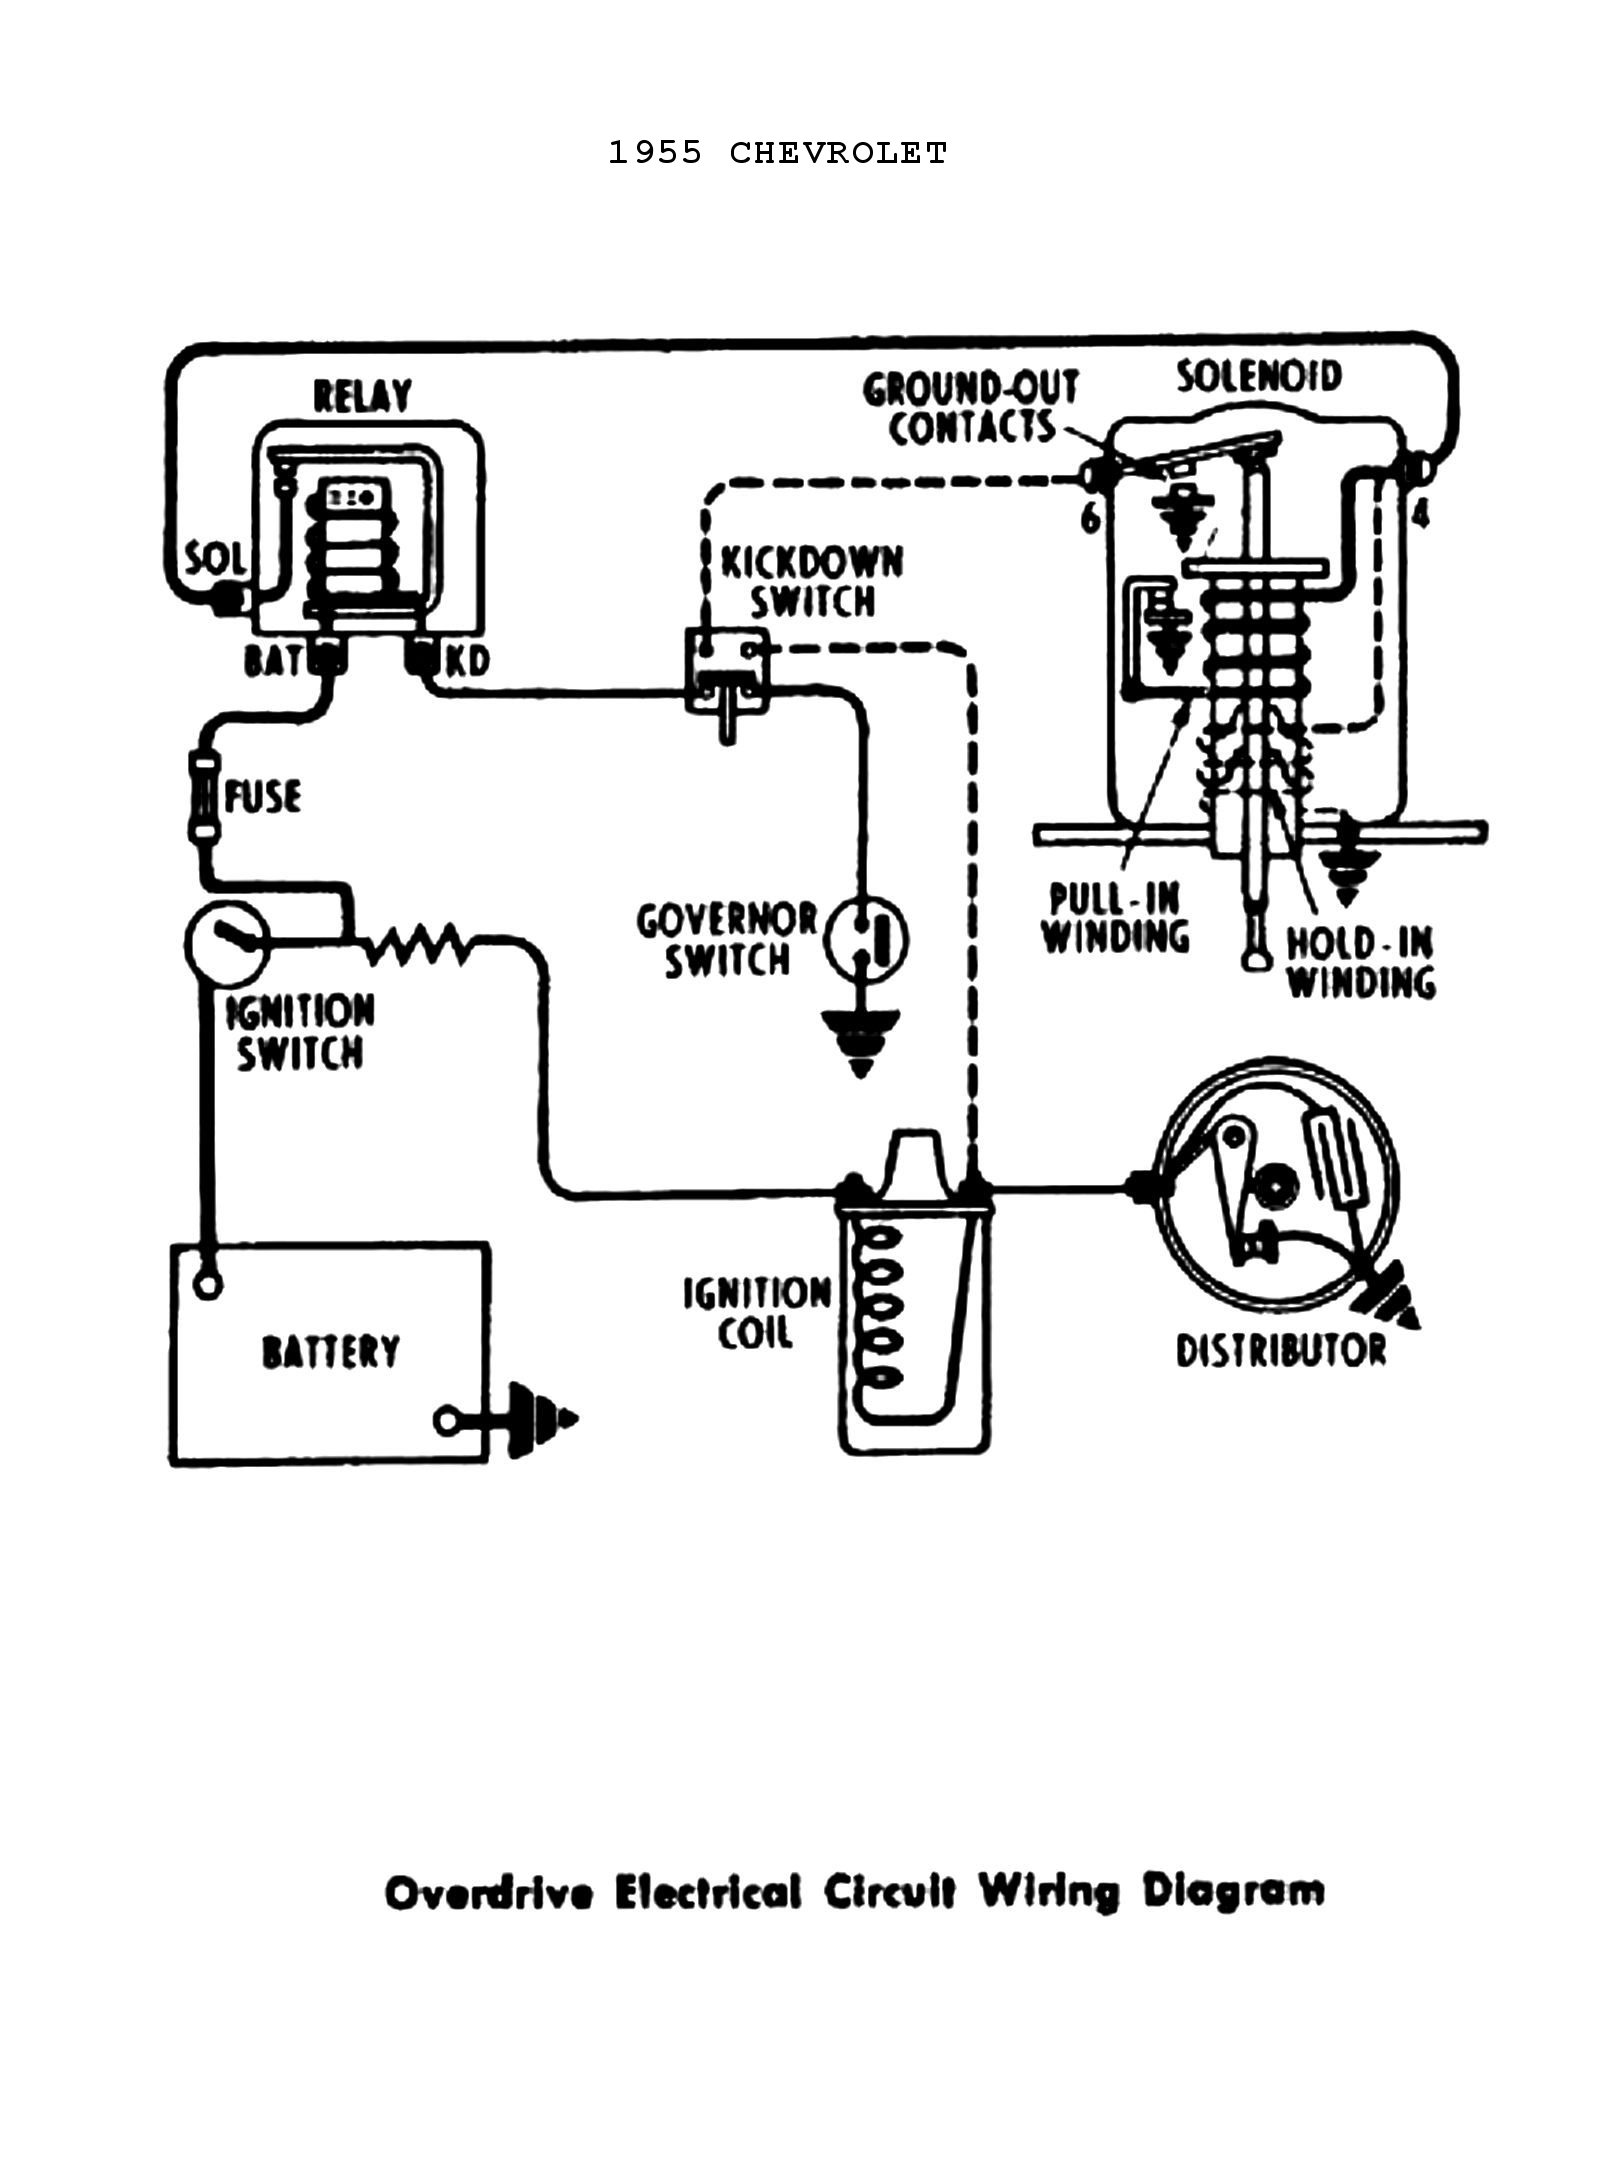 1955 chevy truck wiring harness wirdig air heater wiring schematic 1956 get image about wiring diagram